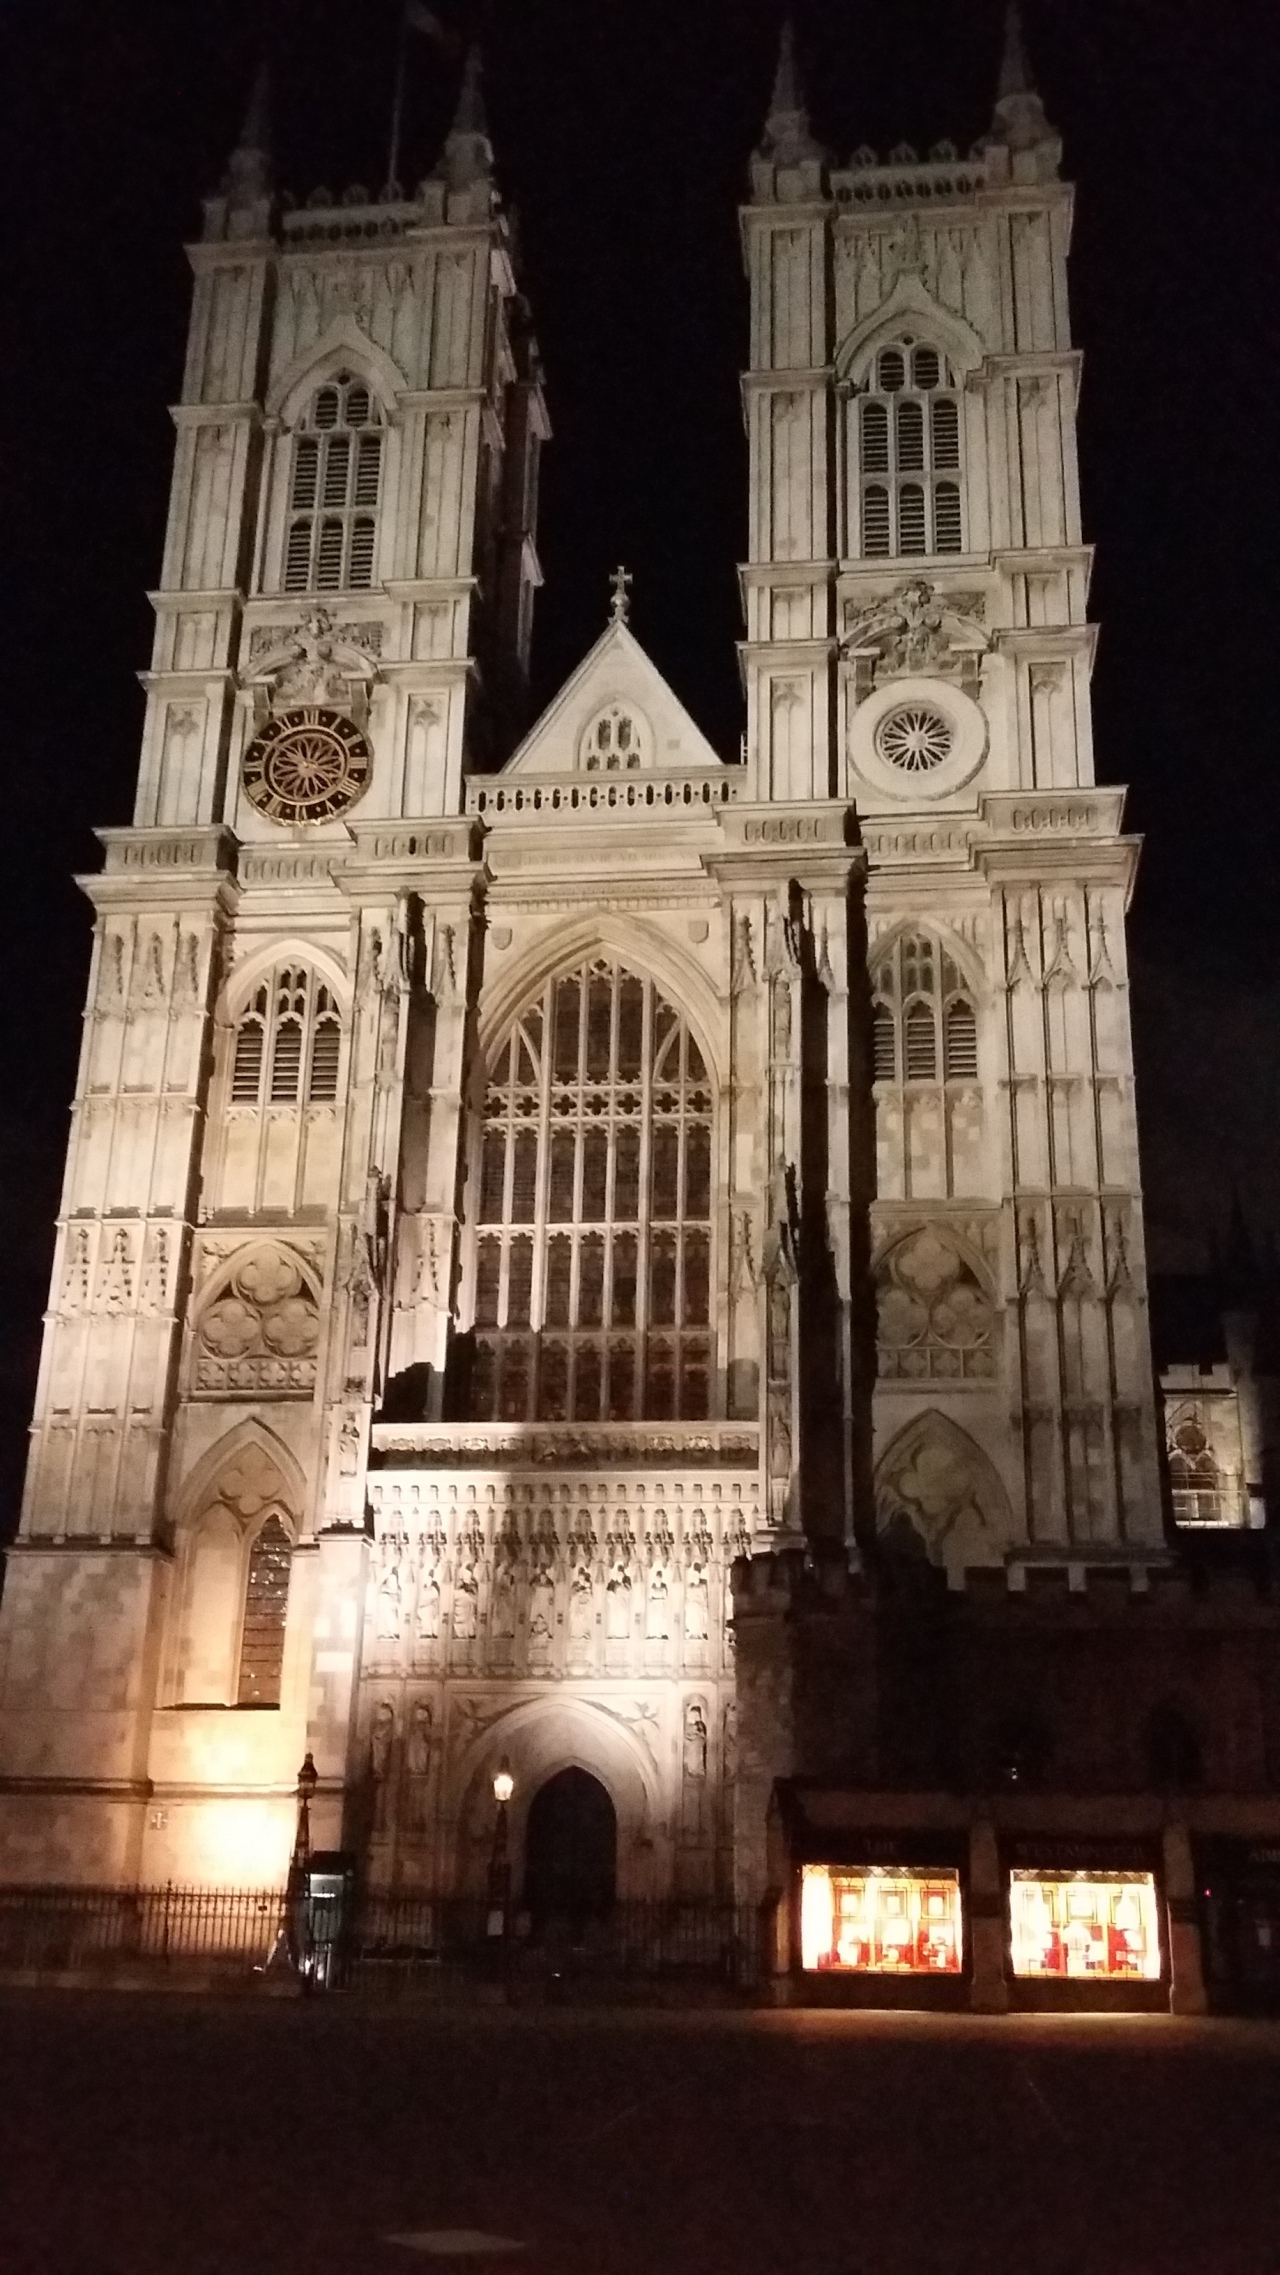 westminster-abbey-london.jpeg